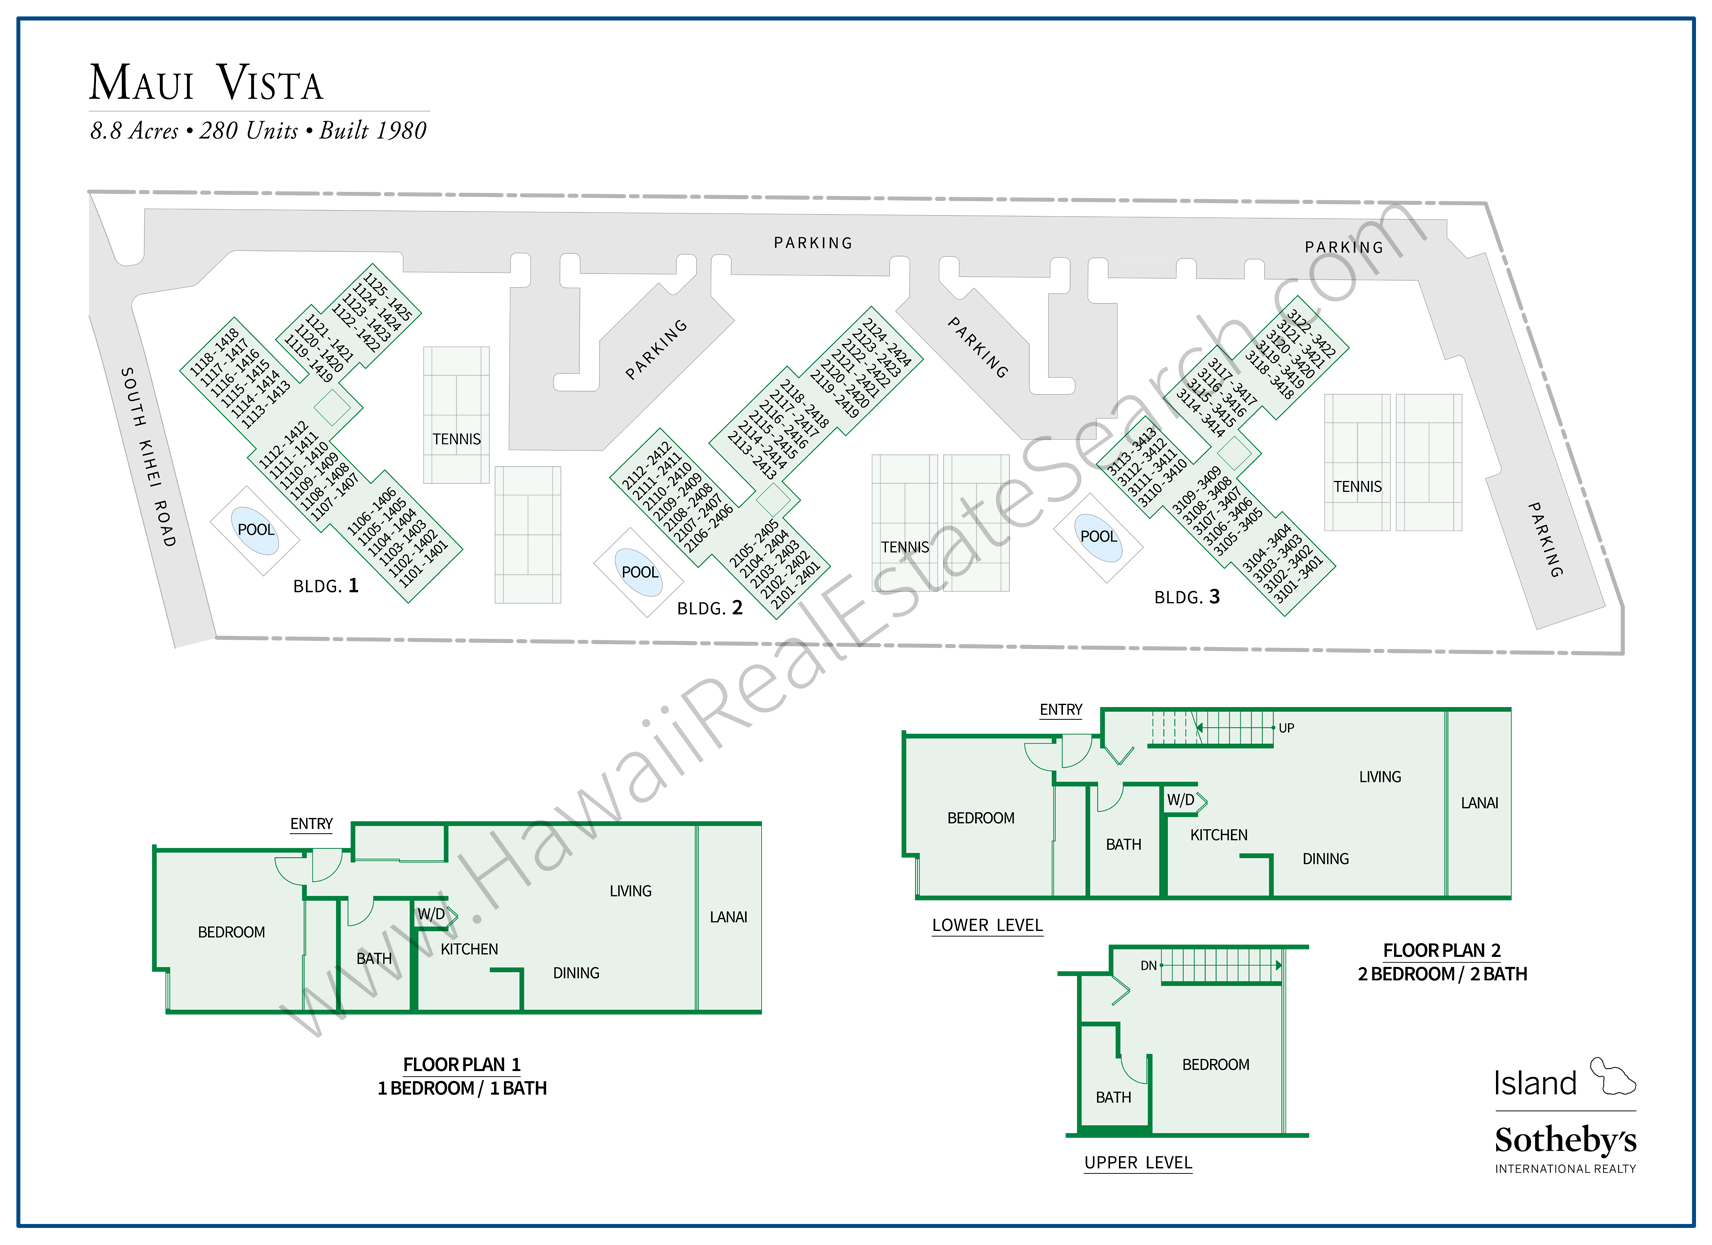 maui vista map and floor plans